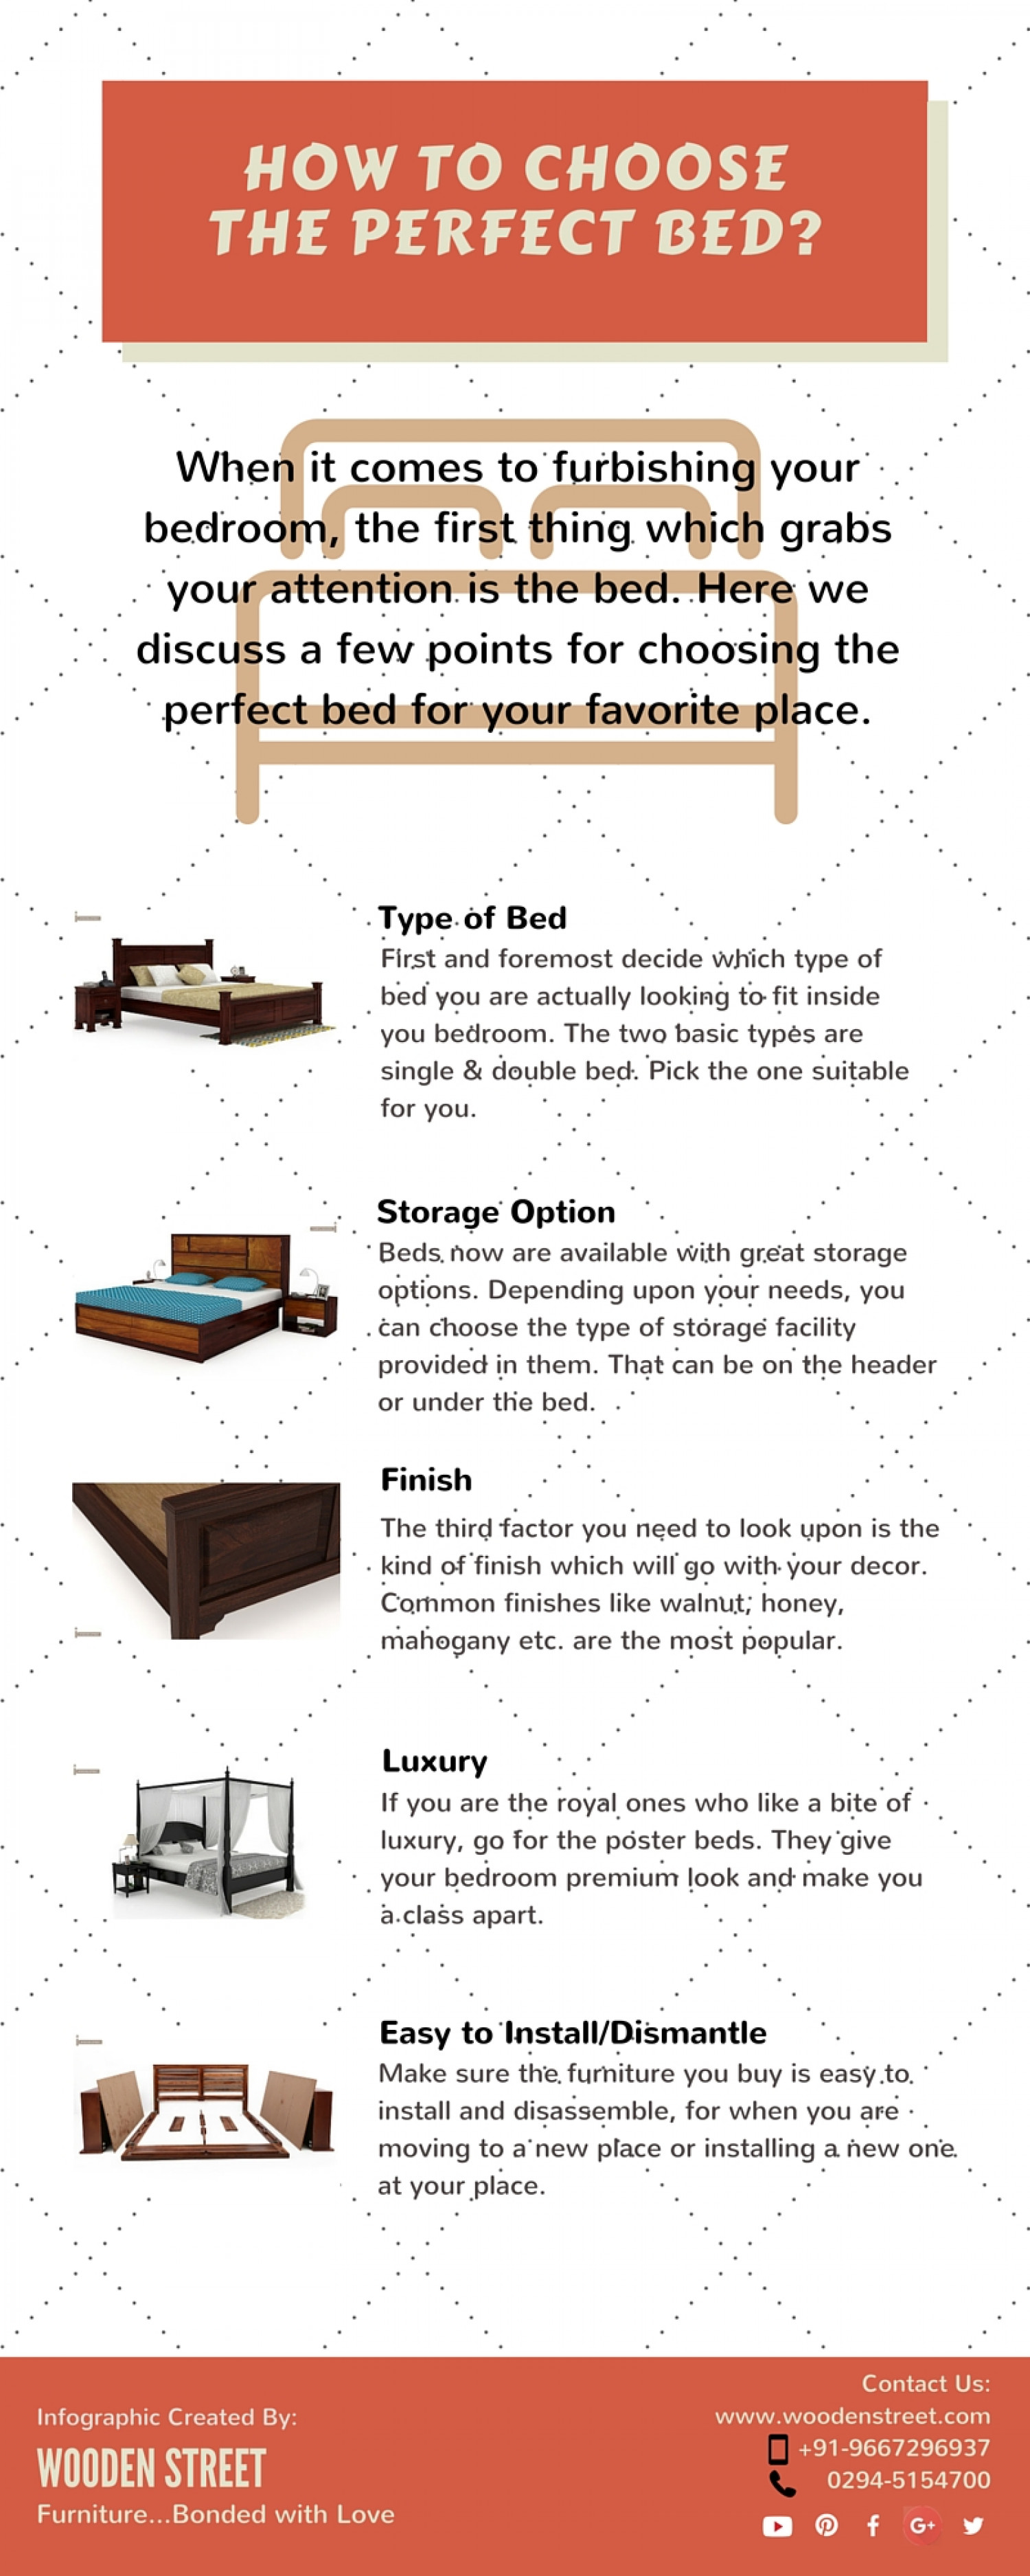 How to Choose a perfect Bed Infographic